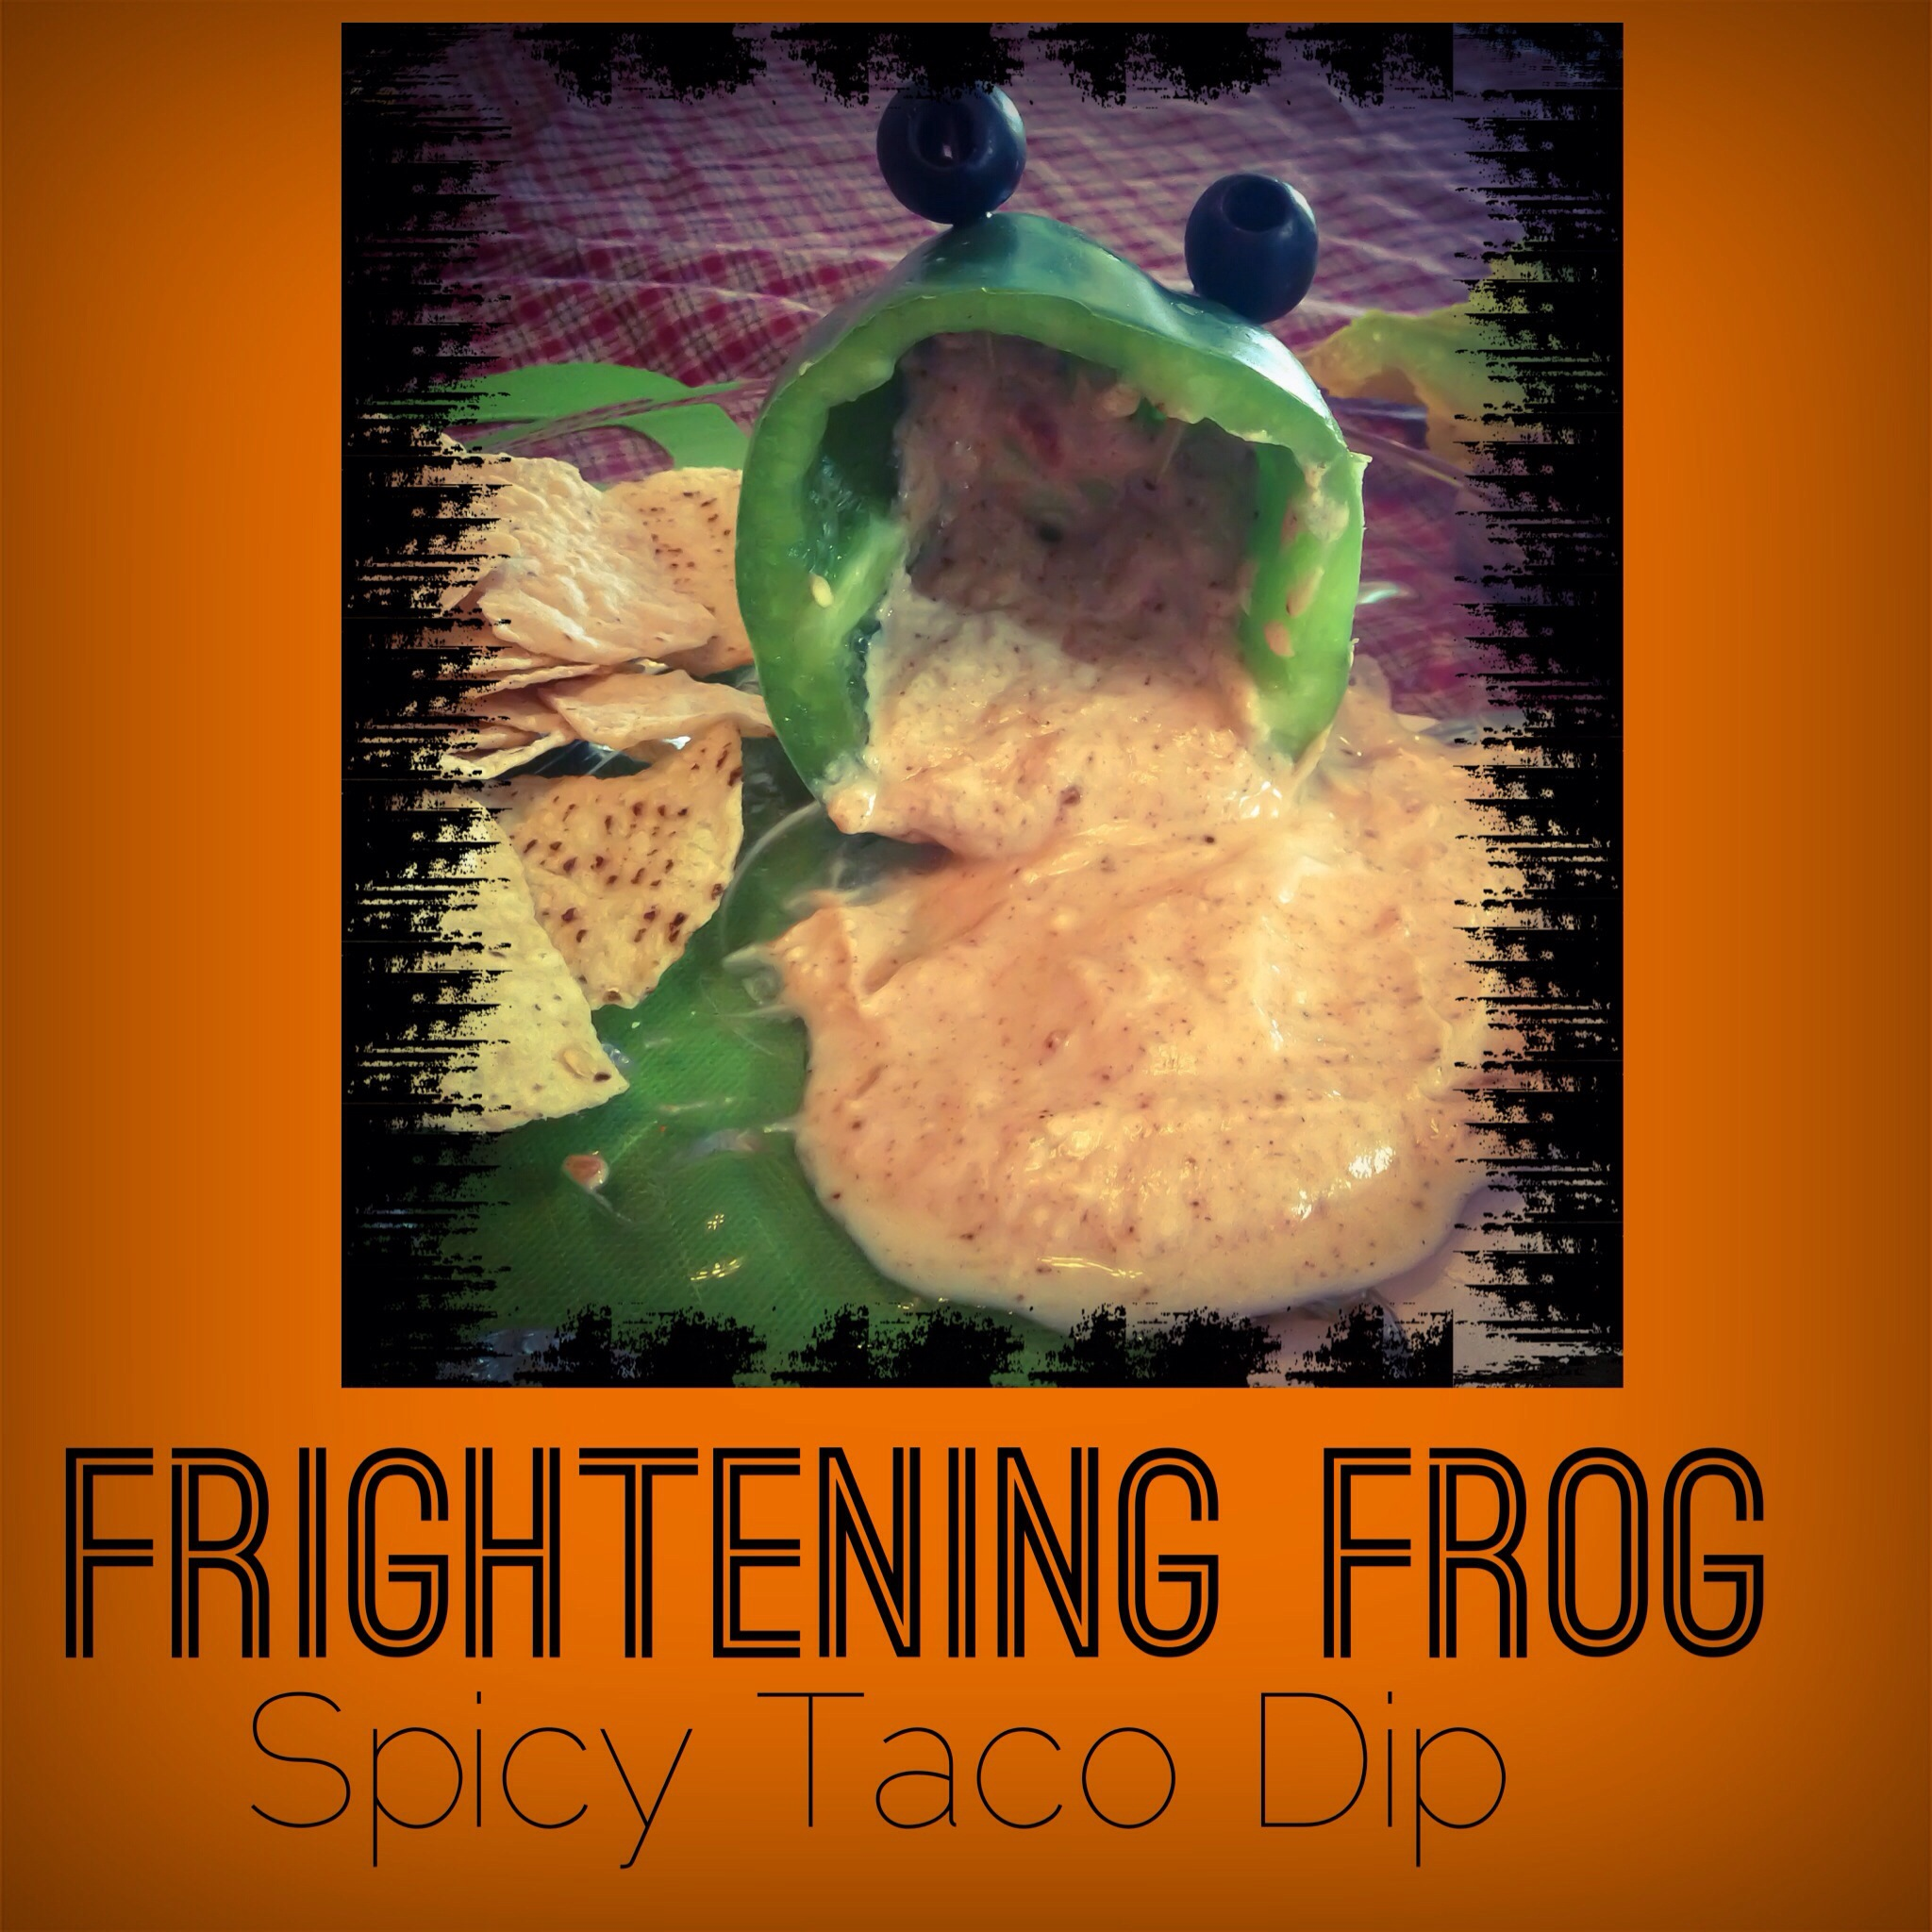 Frightening Frog Spicy Taco Dip